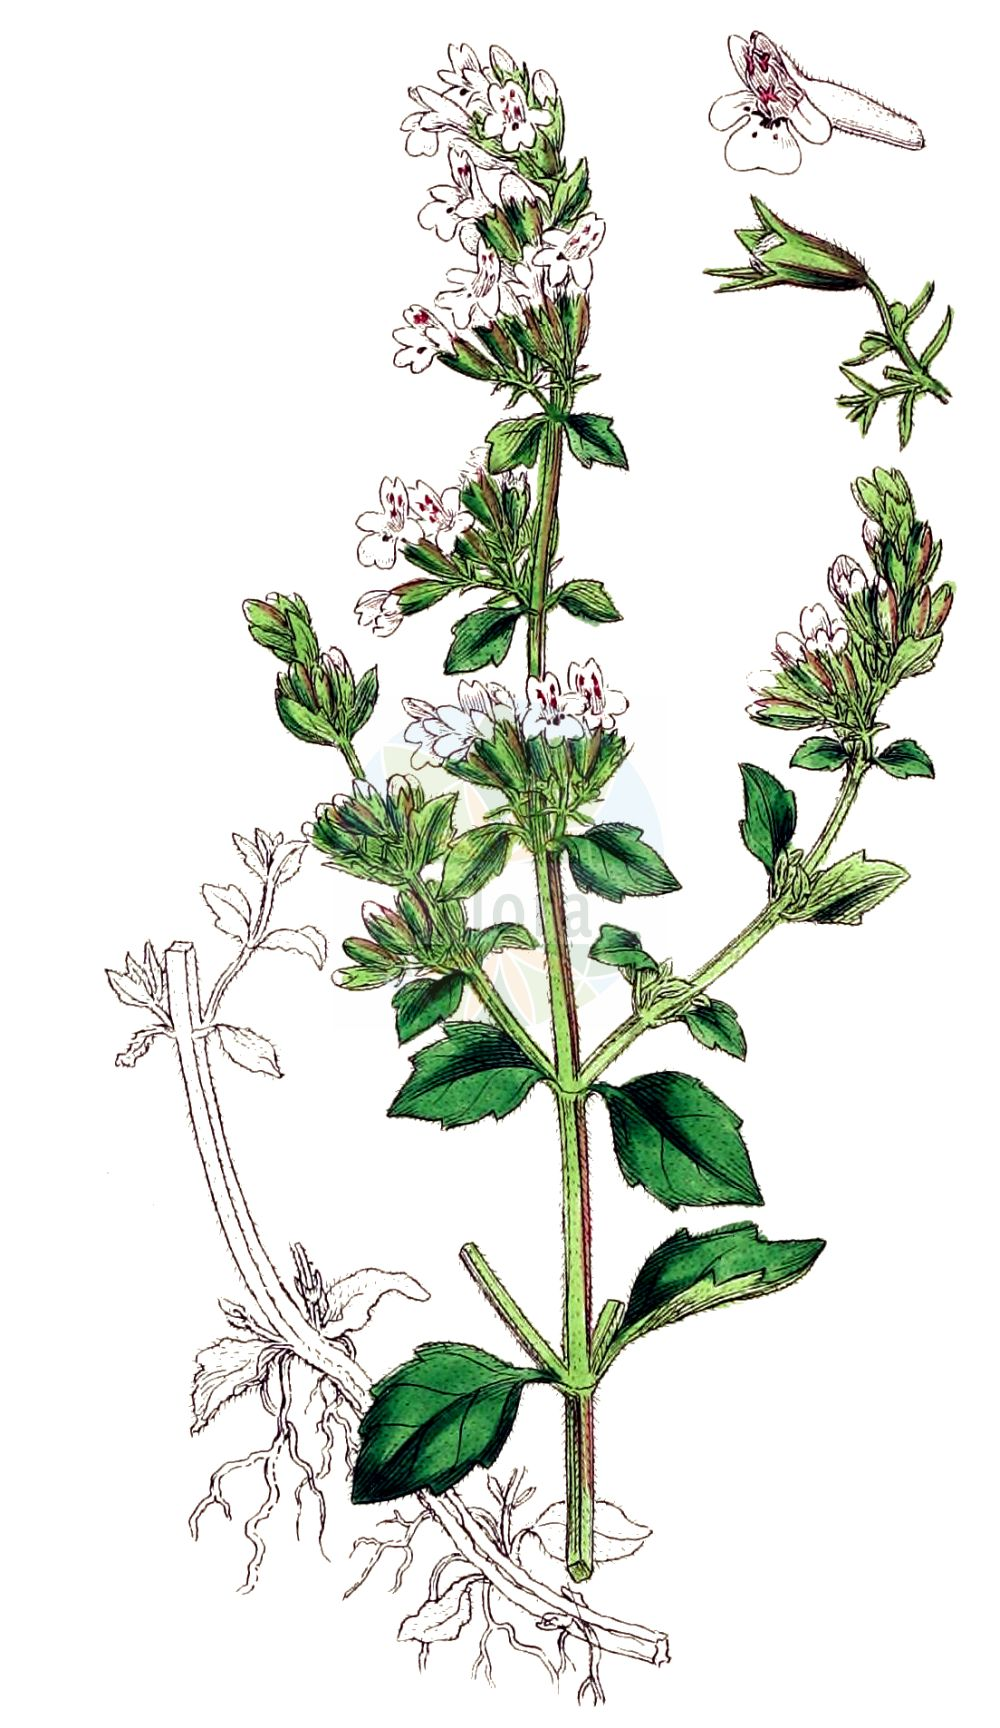 Historische Abbildung von Calamintha nepeta agg. (Kleinbluetige Bergminze - Calamint). Das Bild zeigt Blatt, Bluete, Frucht und Same. ---- Historical Drawing of Calamintha nepeta agg. (Kleinbluetige Bergminze - Calamint).The image is showing leaf, flower, fruit and seed.(Calamintha nepeta agg.,Kleinbluetige Bergminze,Calamint,Kleinbluetige Bergminze,Echte Bergminze,Calamint,Field Balm,Field Calamint,Lesser Calamint,Small-flowered Calamint,Calamintha,Bergminze,Calamint,Blatt,Bluete,Frucht,Same,leaf,flower,fruit,seed,Sowerby (1790-1813))